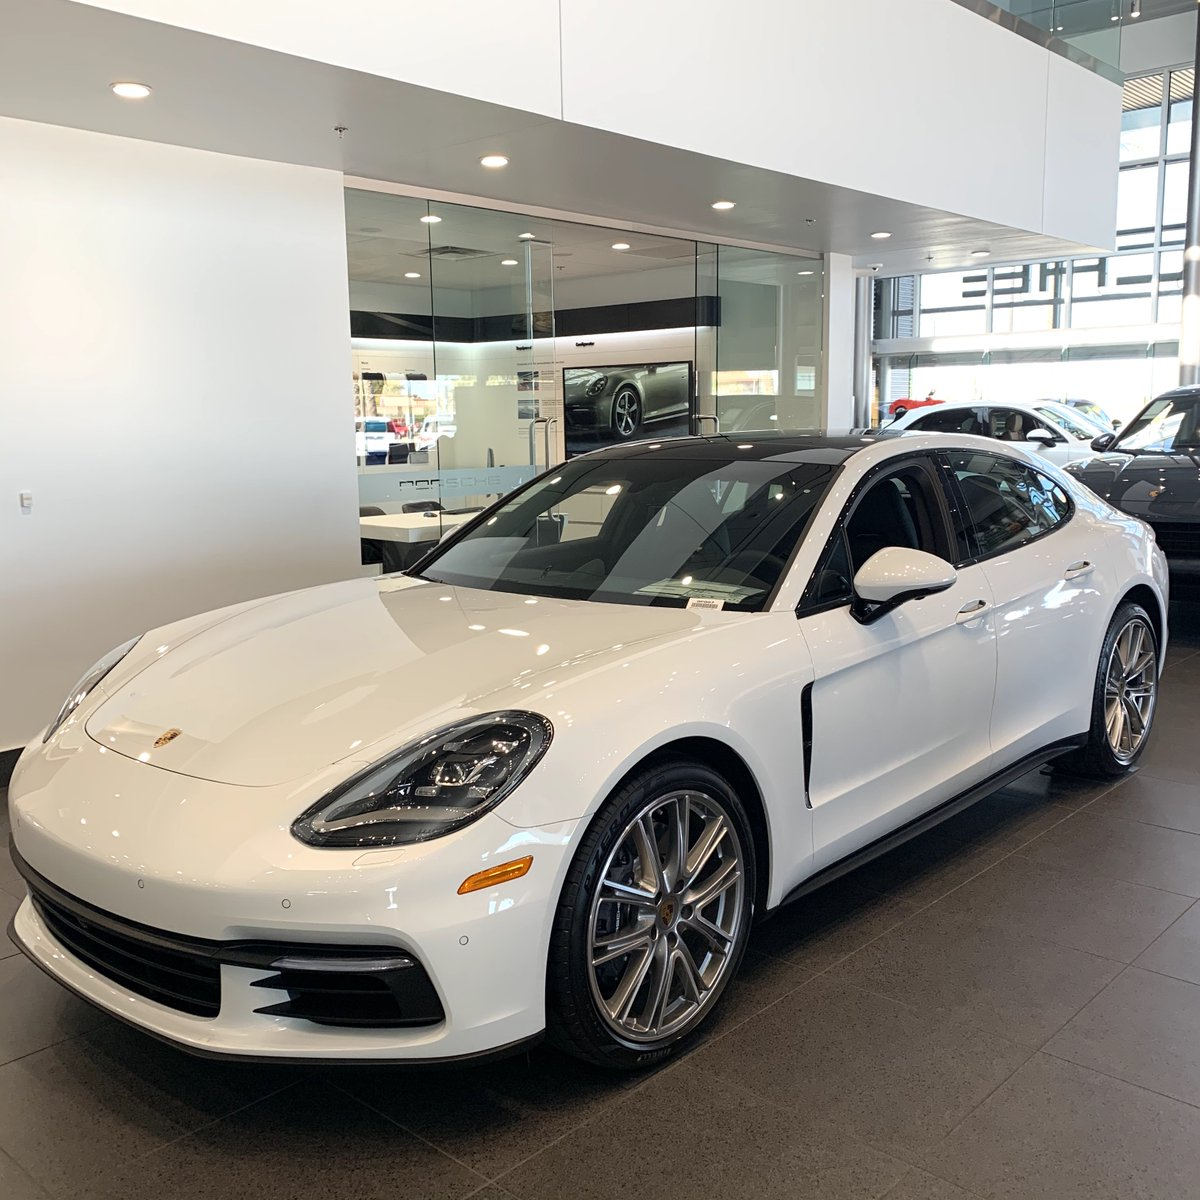 Stunning 2020 #Porsche #Panamera in our showroom.  A #sportscar with four seats, an unmistakable silhouette, and performance figures associated only with a Porsche. pic.twitter.com/wIsXcjnCKf